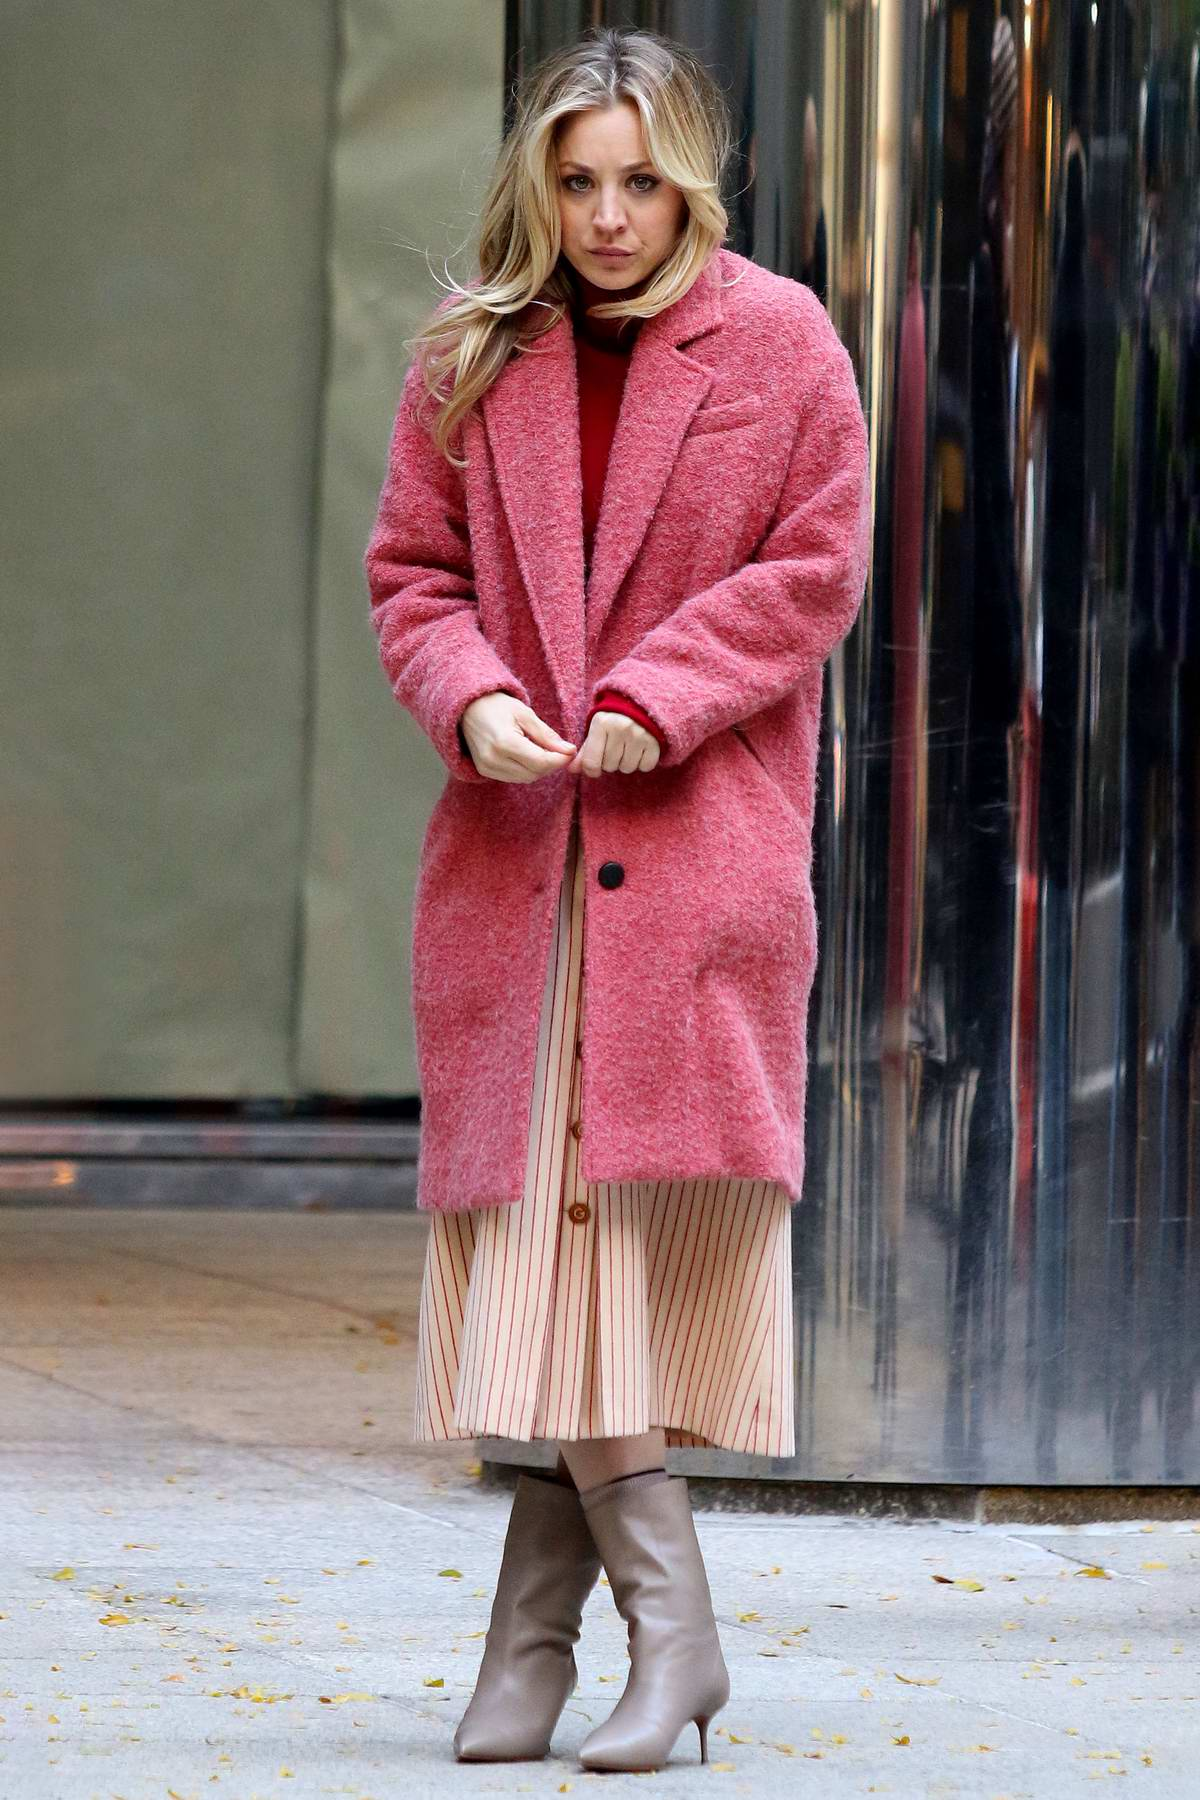 Kaley Cuoco seen wearing a pink coat on the set of 'The Flight Attendant' while filming an emotional scene in New York City